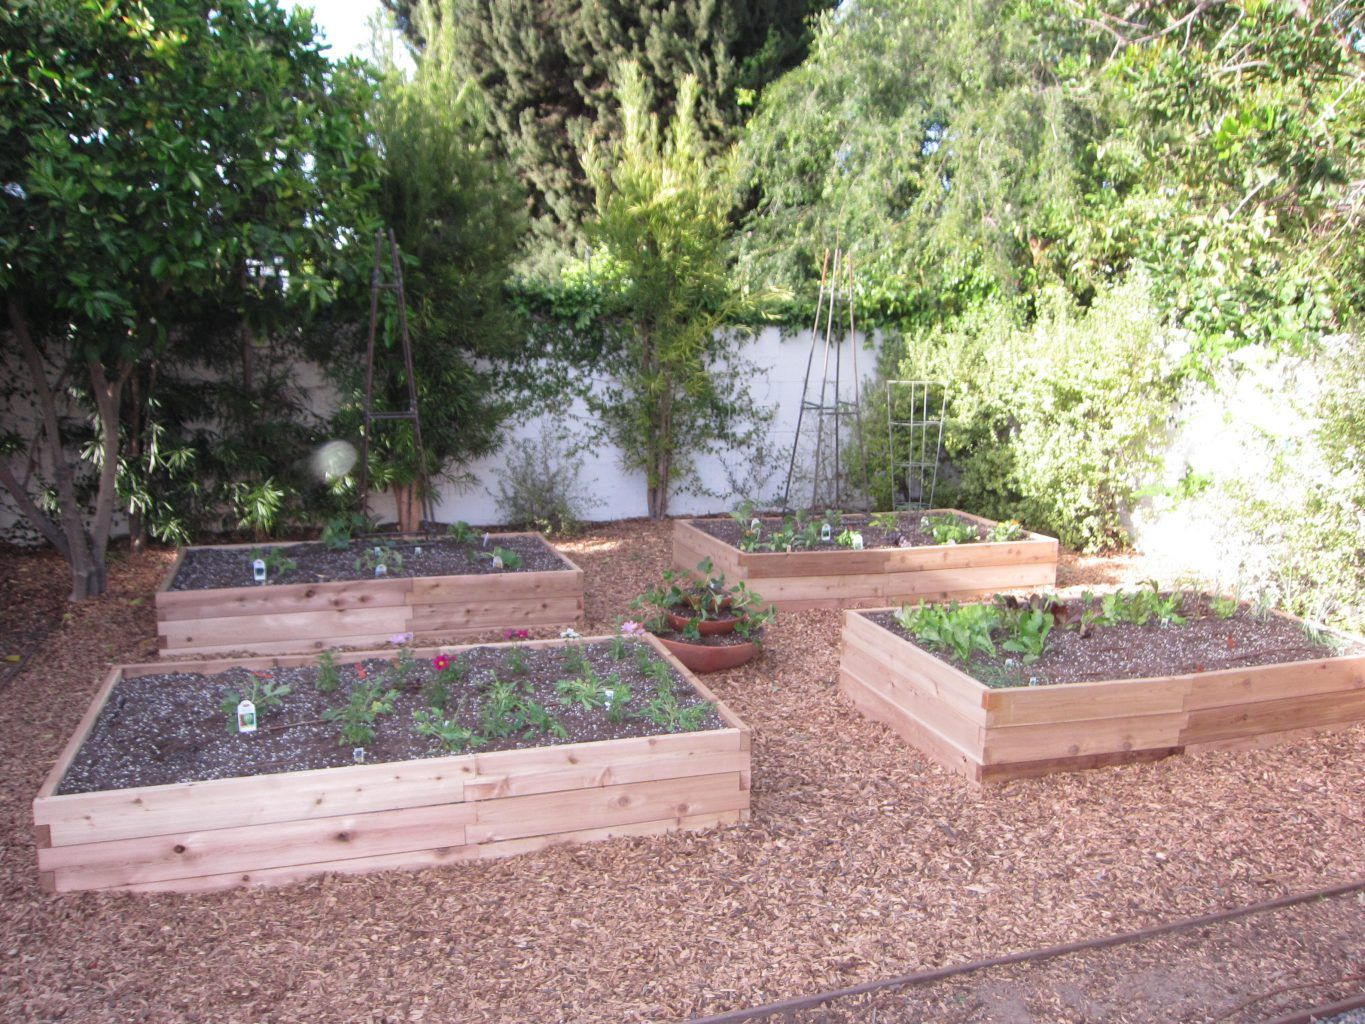 the completed garden will feed the family tasty vegetables year